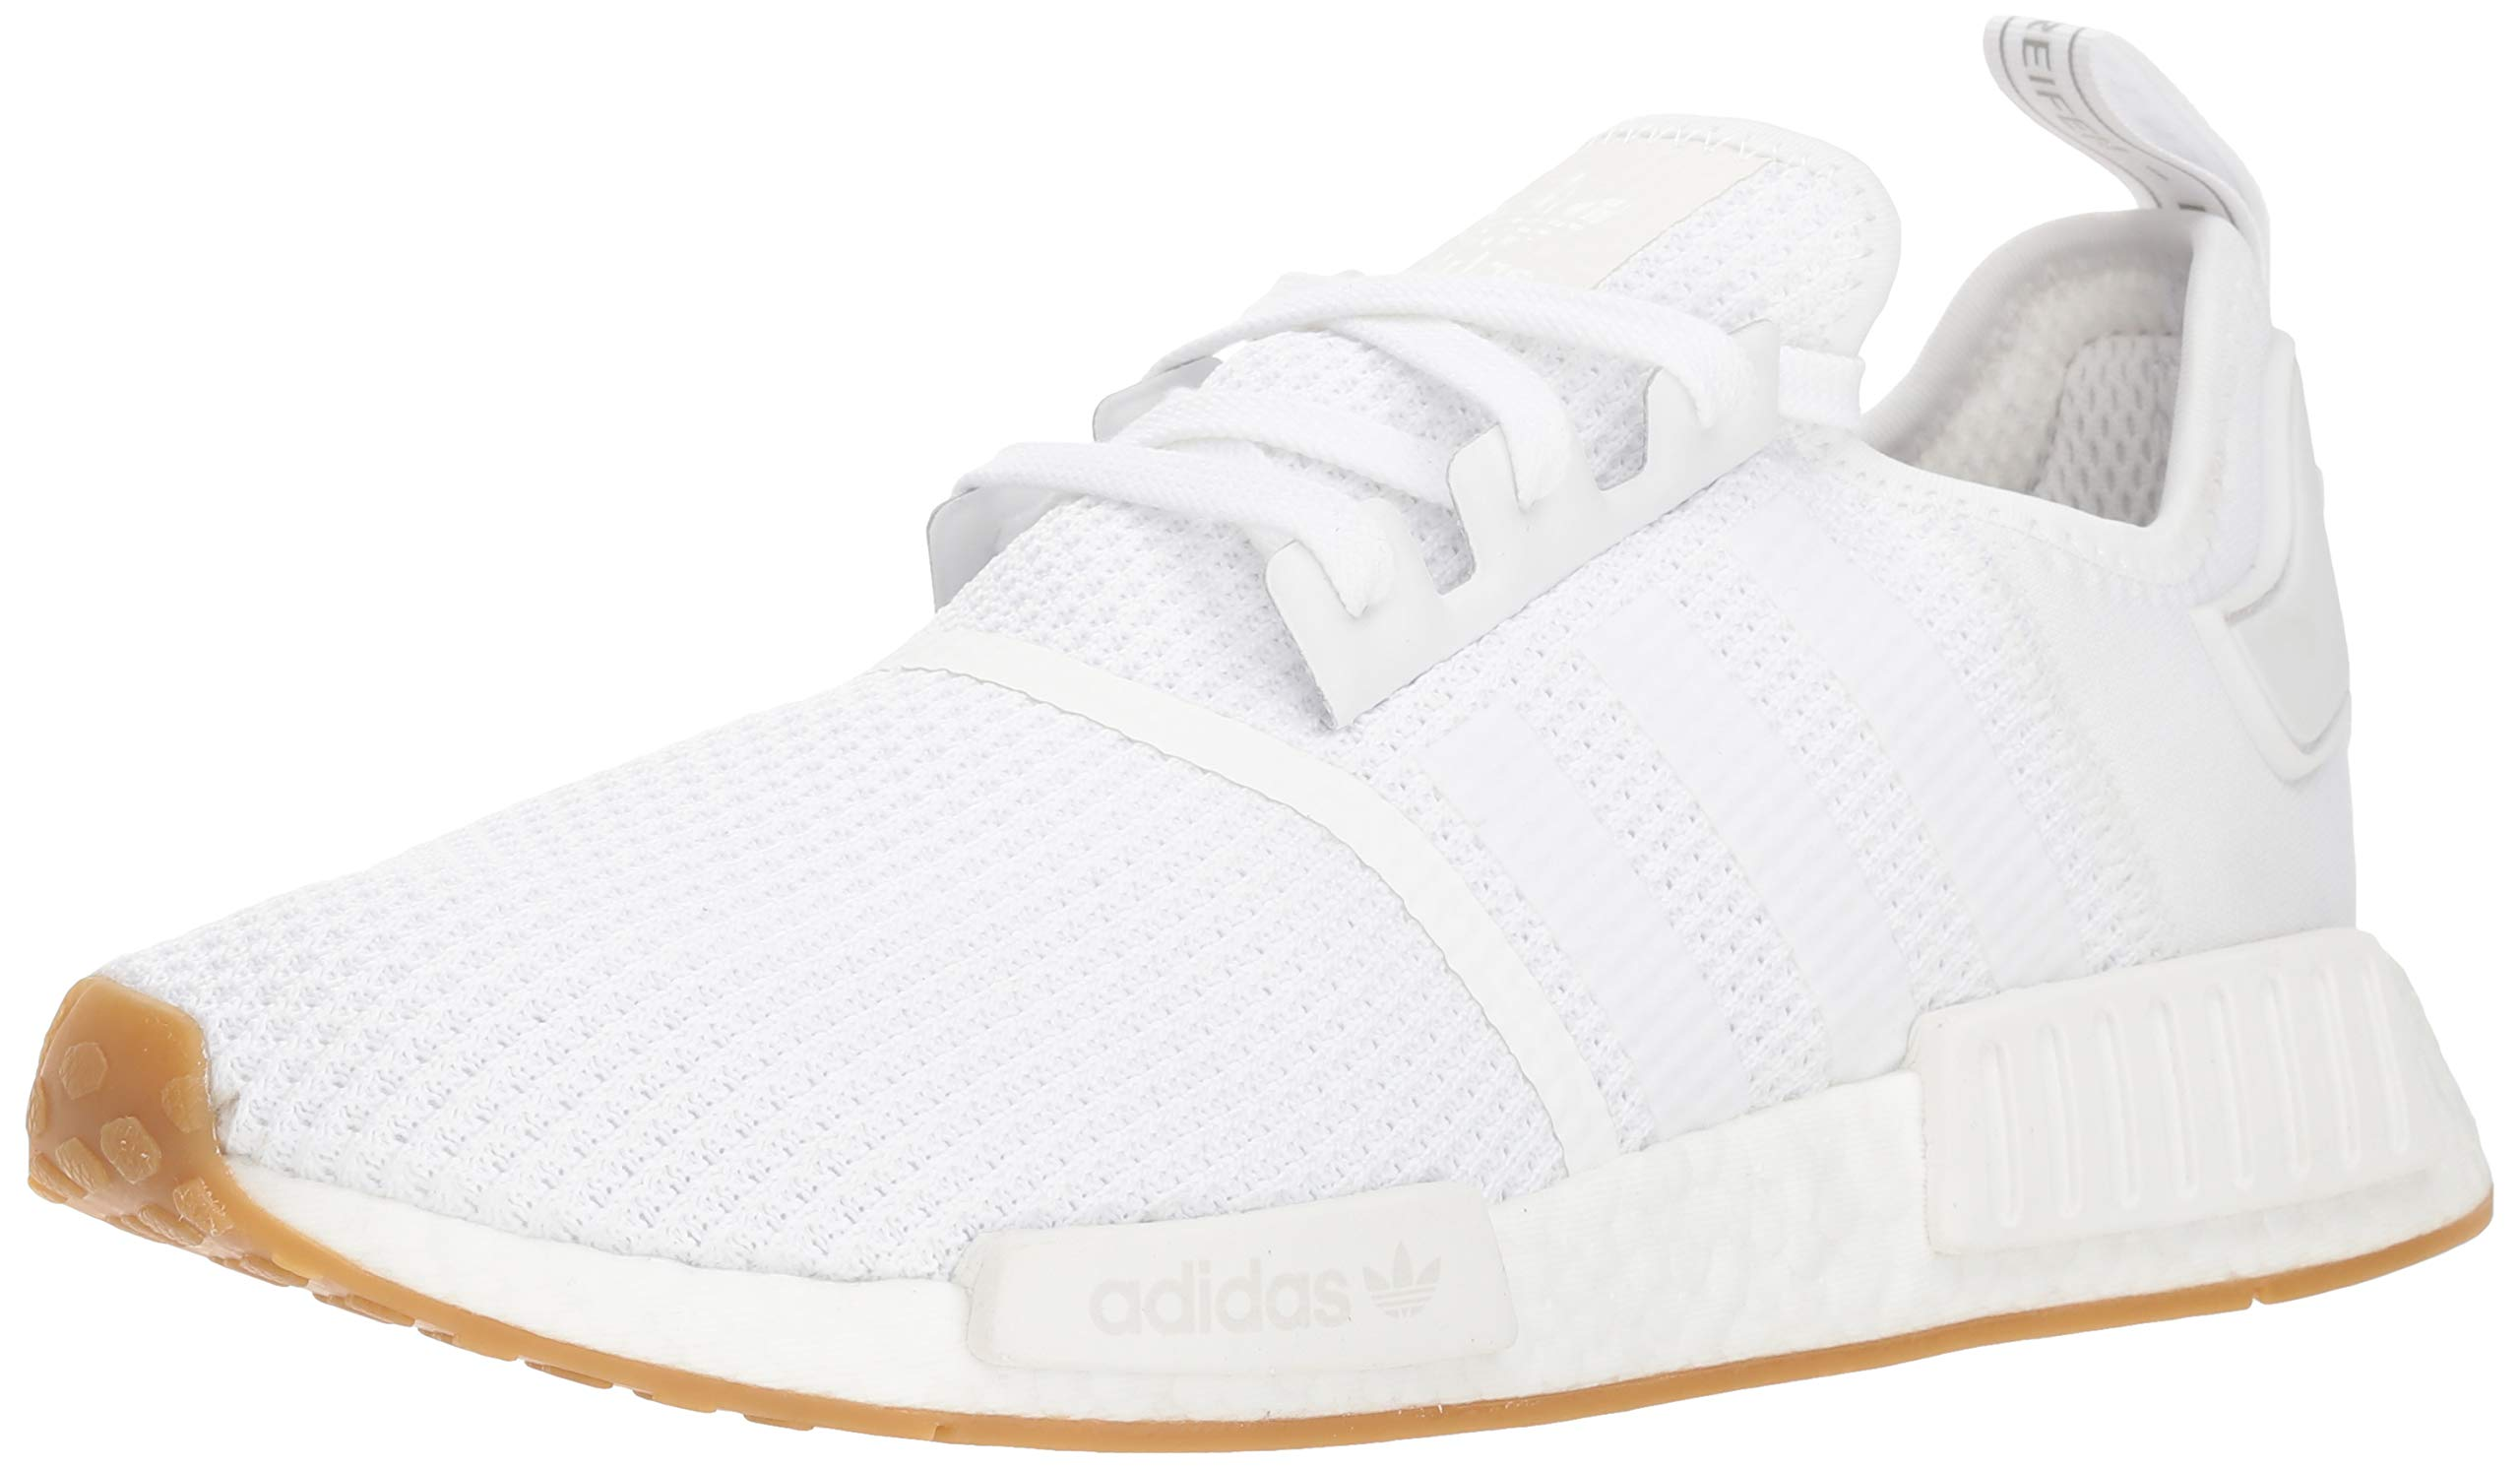 adidas Originals Men's NMD_R1 Running Shoe, White/Gum, 7.5 M US